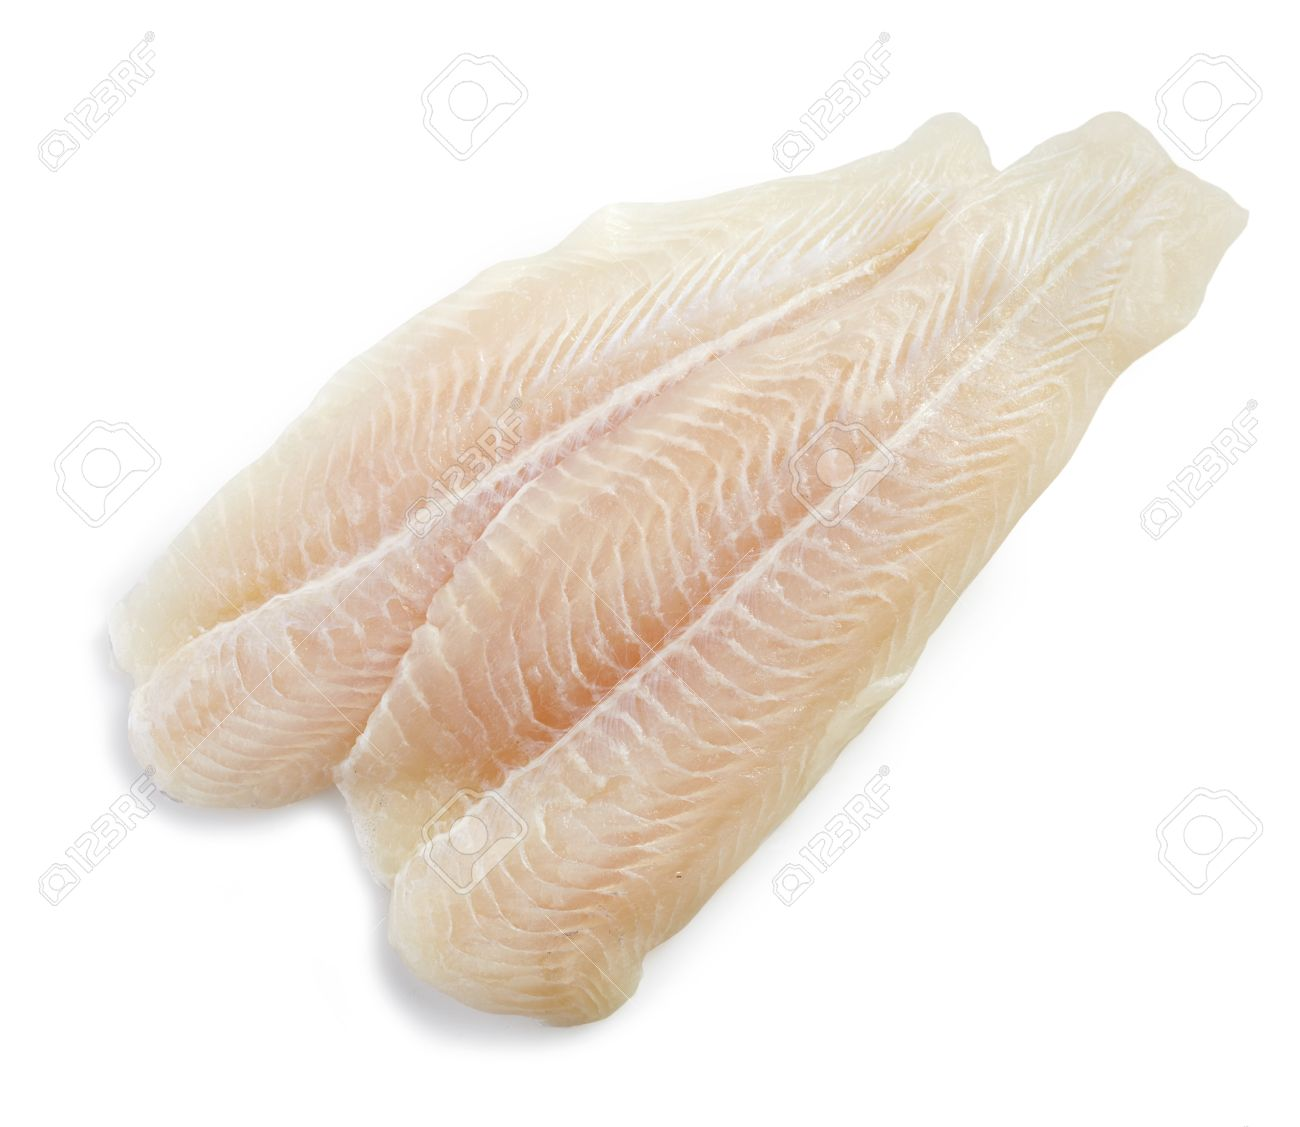 Fresh Raw Pangasius Fish Fillet On White Background Stock Photo Picture And Royalty Free Image Image 20106255